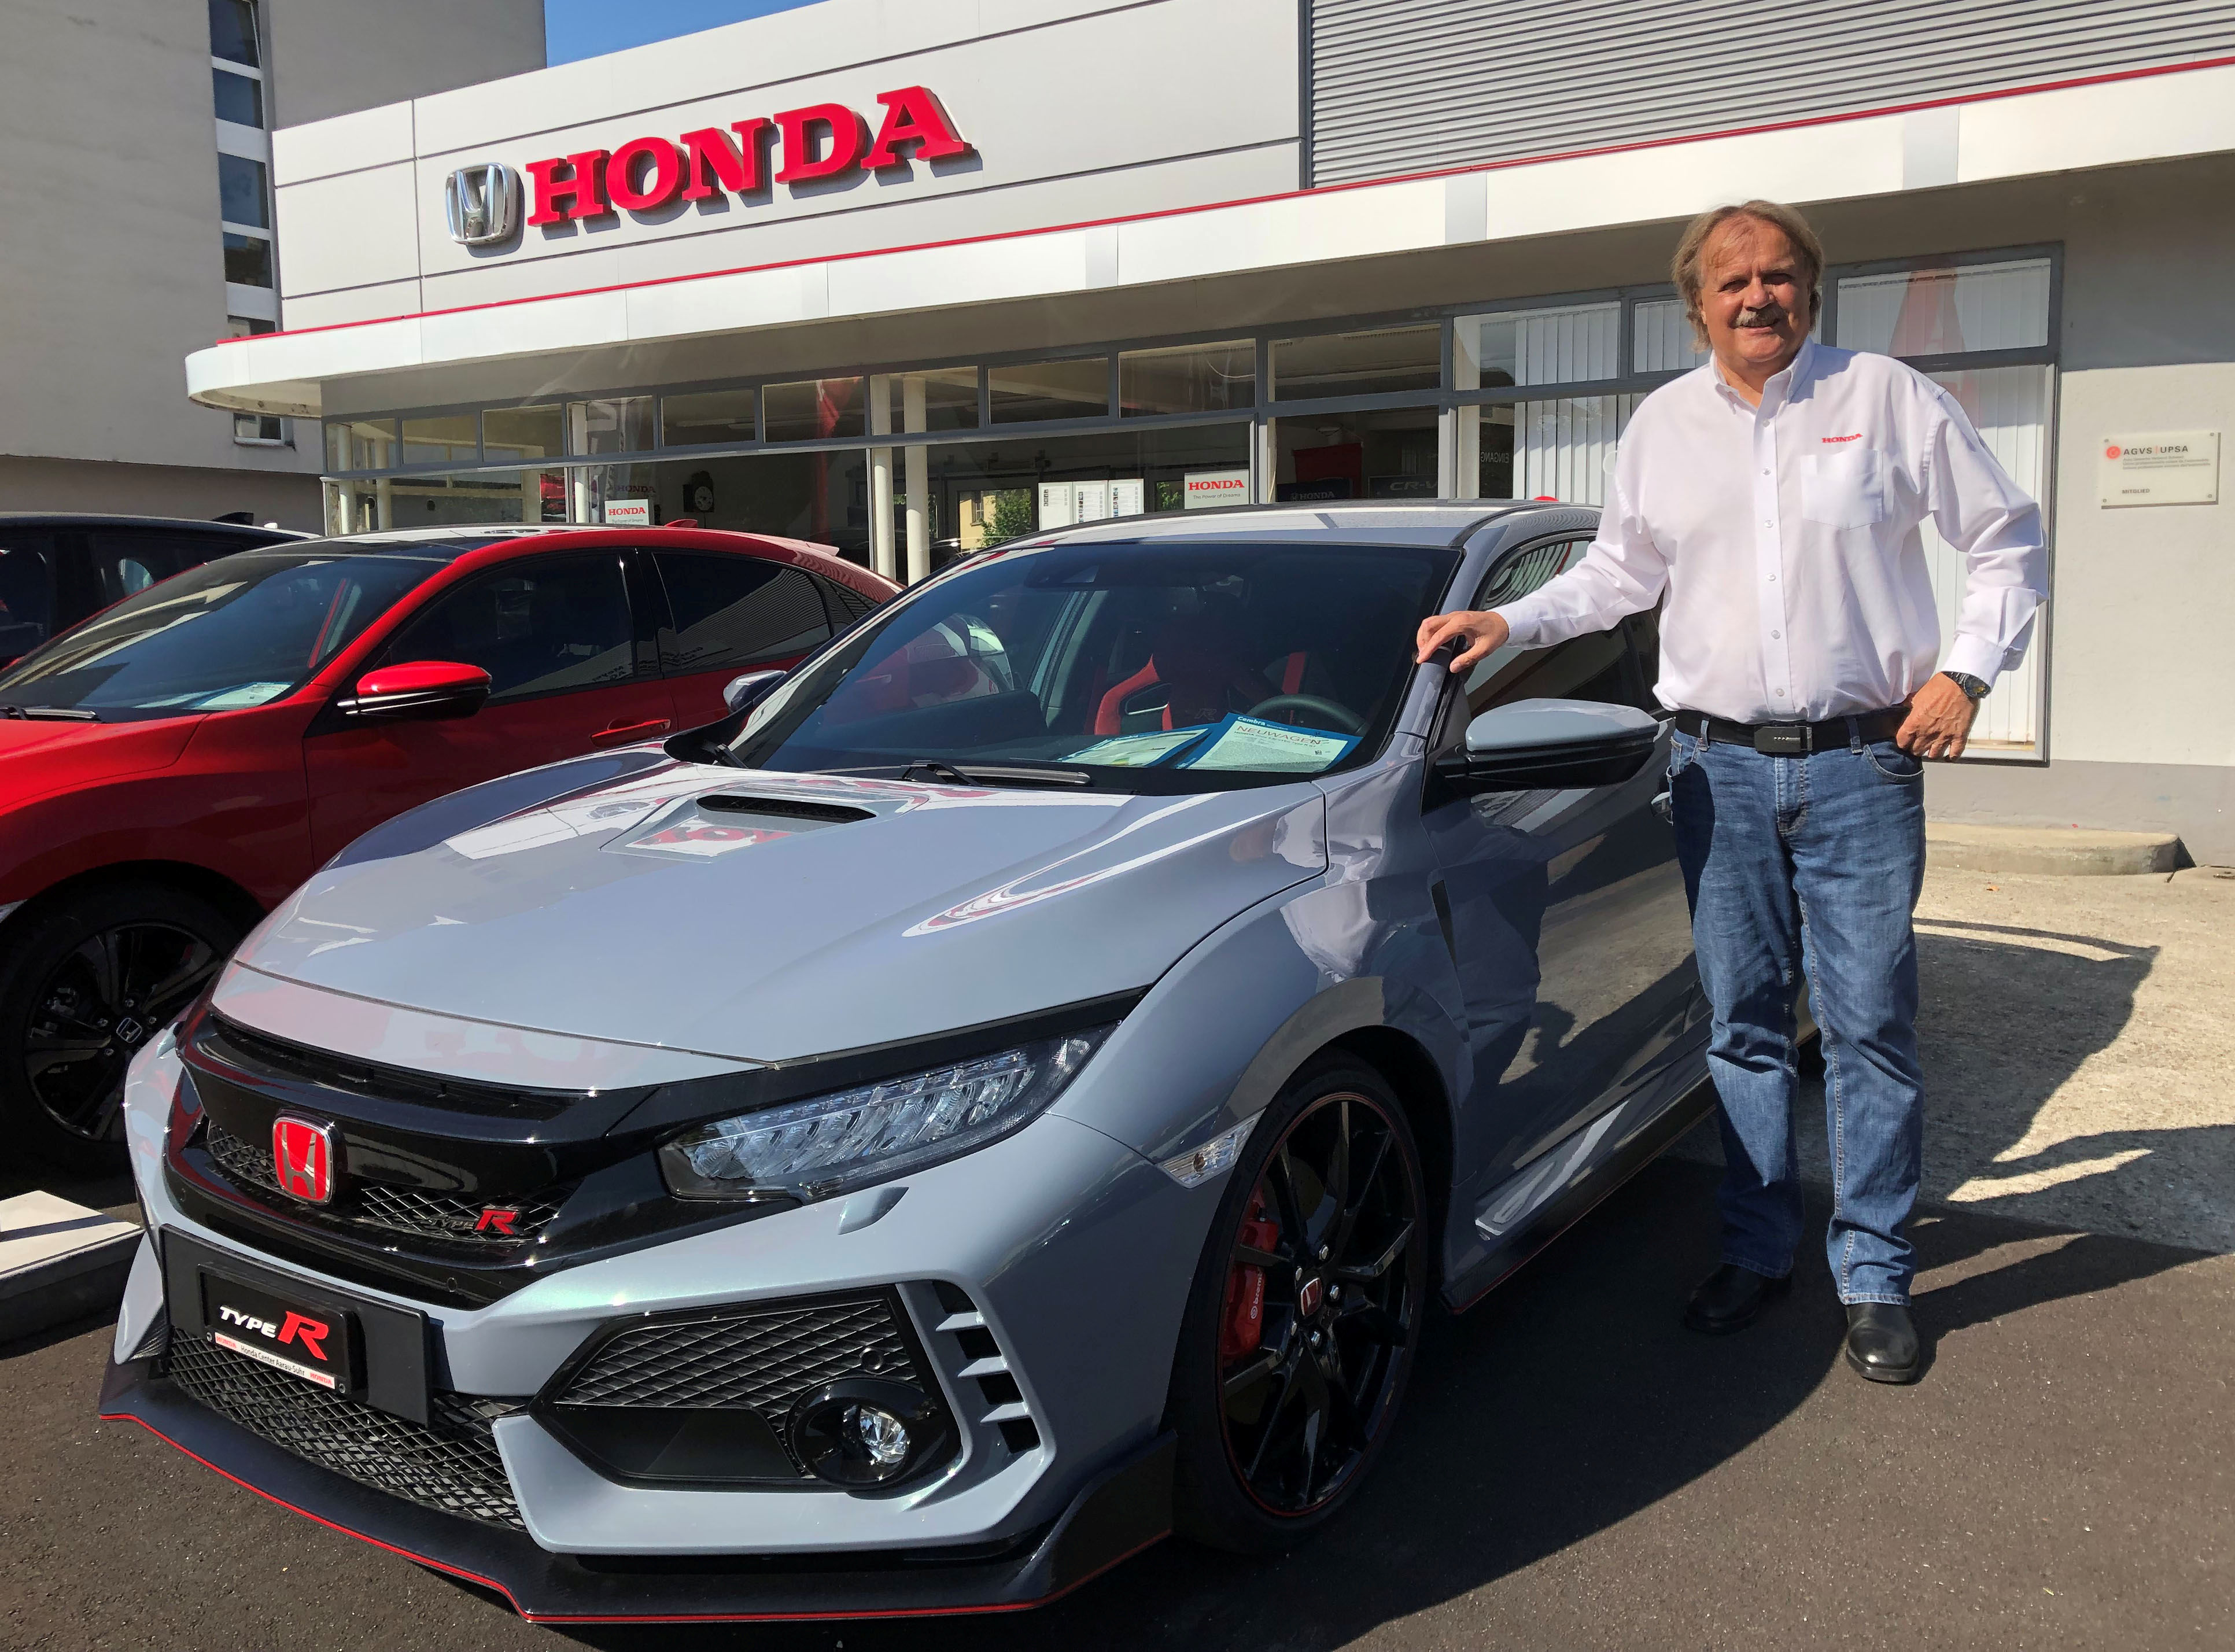 Honda Civic Type R - Wildes Temperament